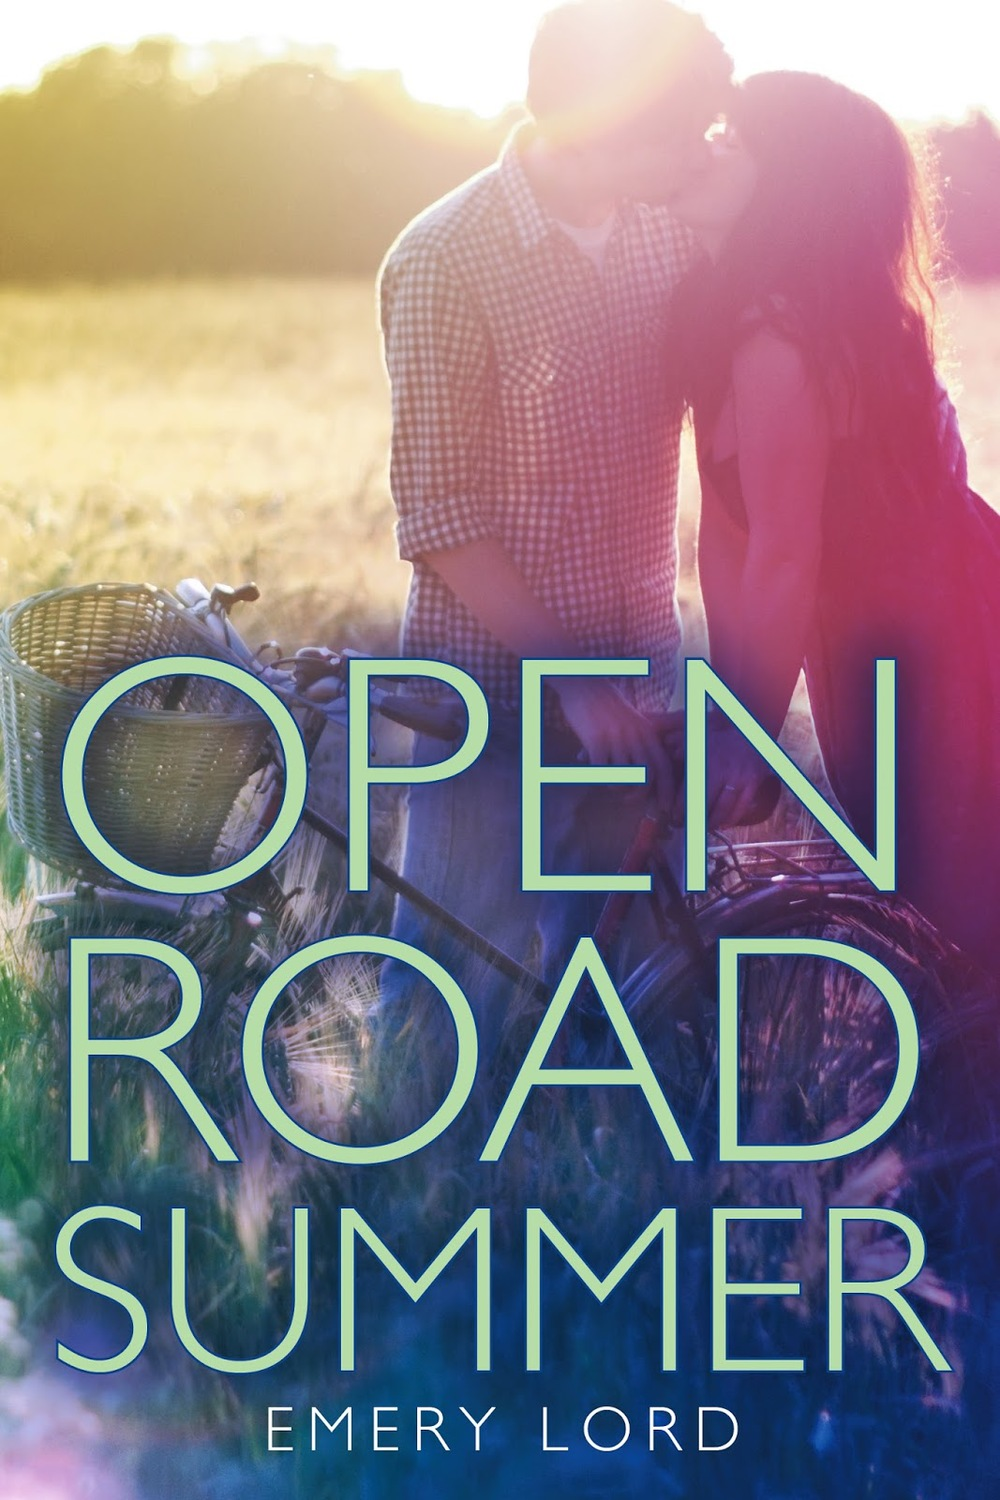 Open Road Summer by Emery Lord  Amazon  |  Goodreads